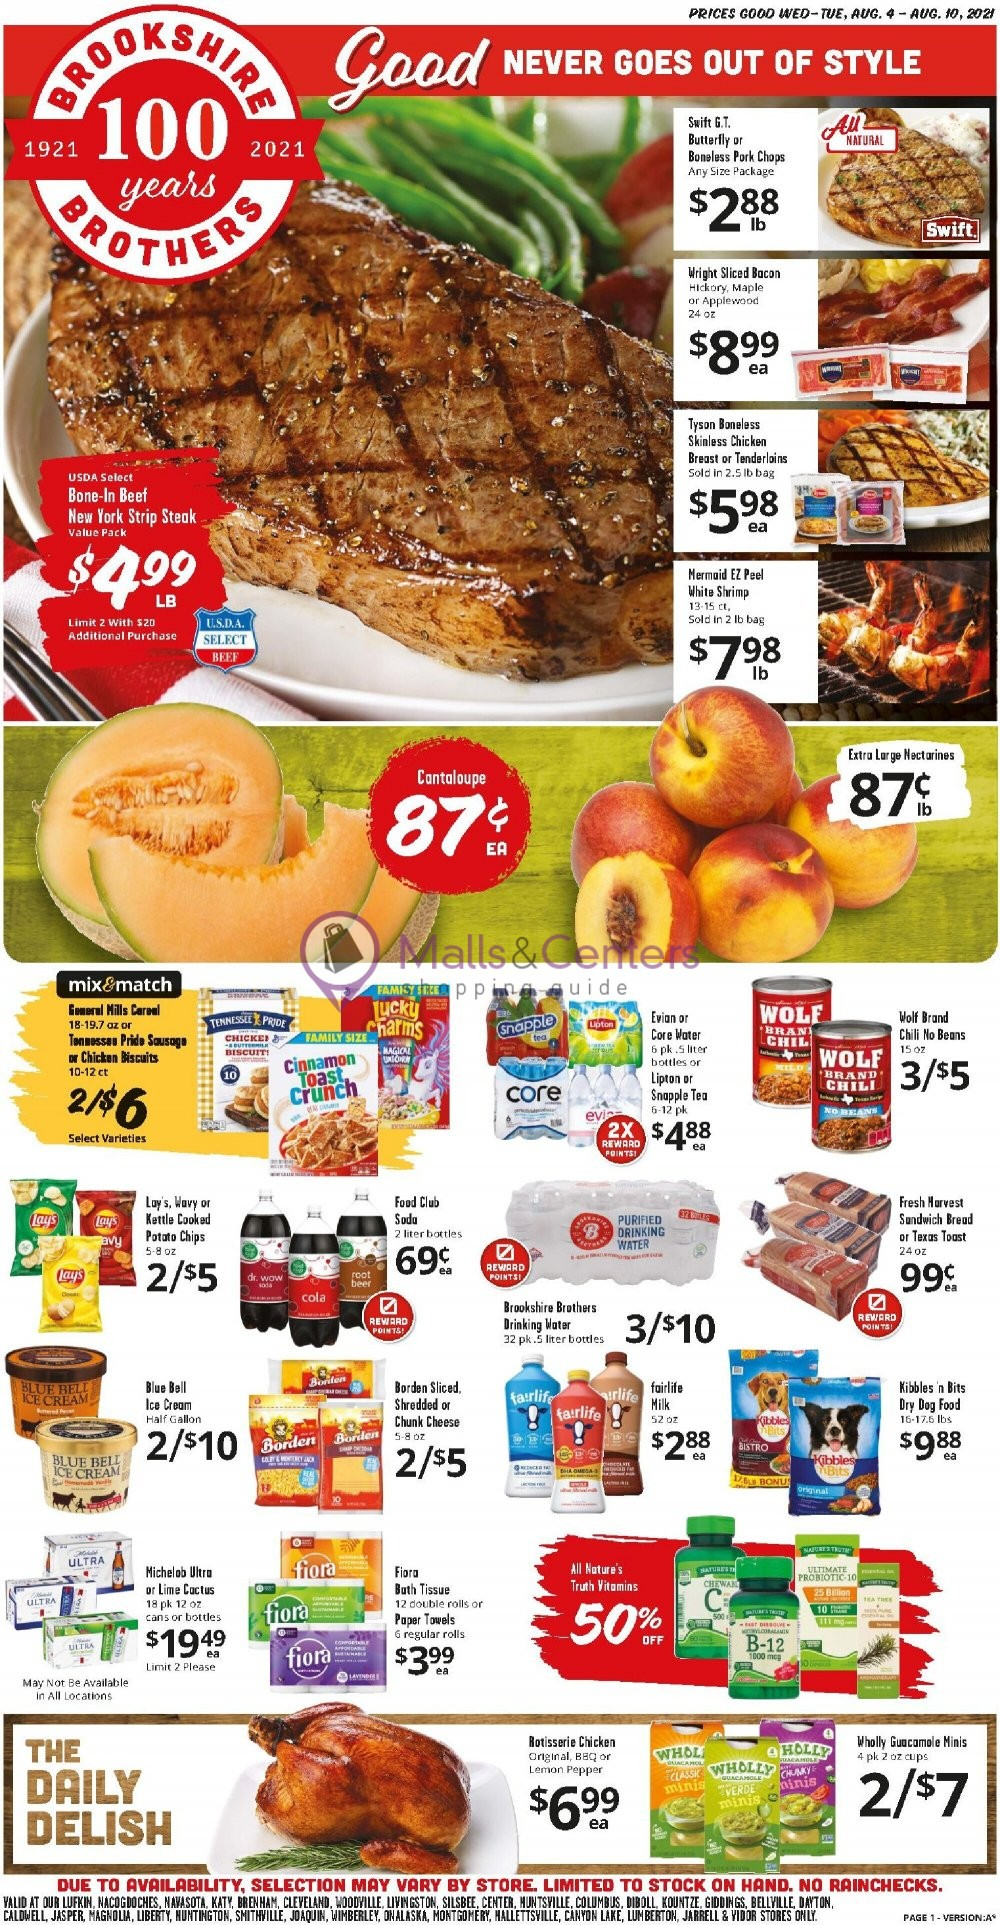 weekly ads Brookshire Brothers - page 1 - mallscenters.com